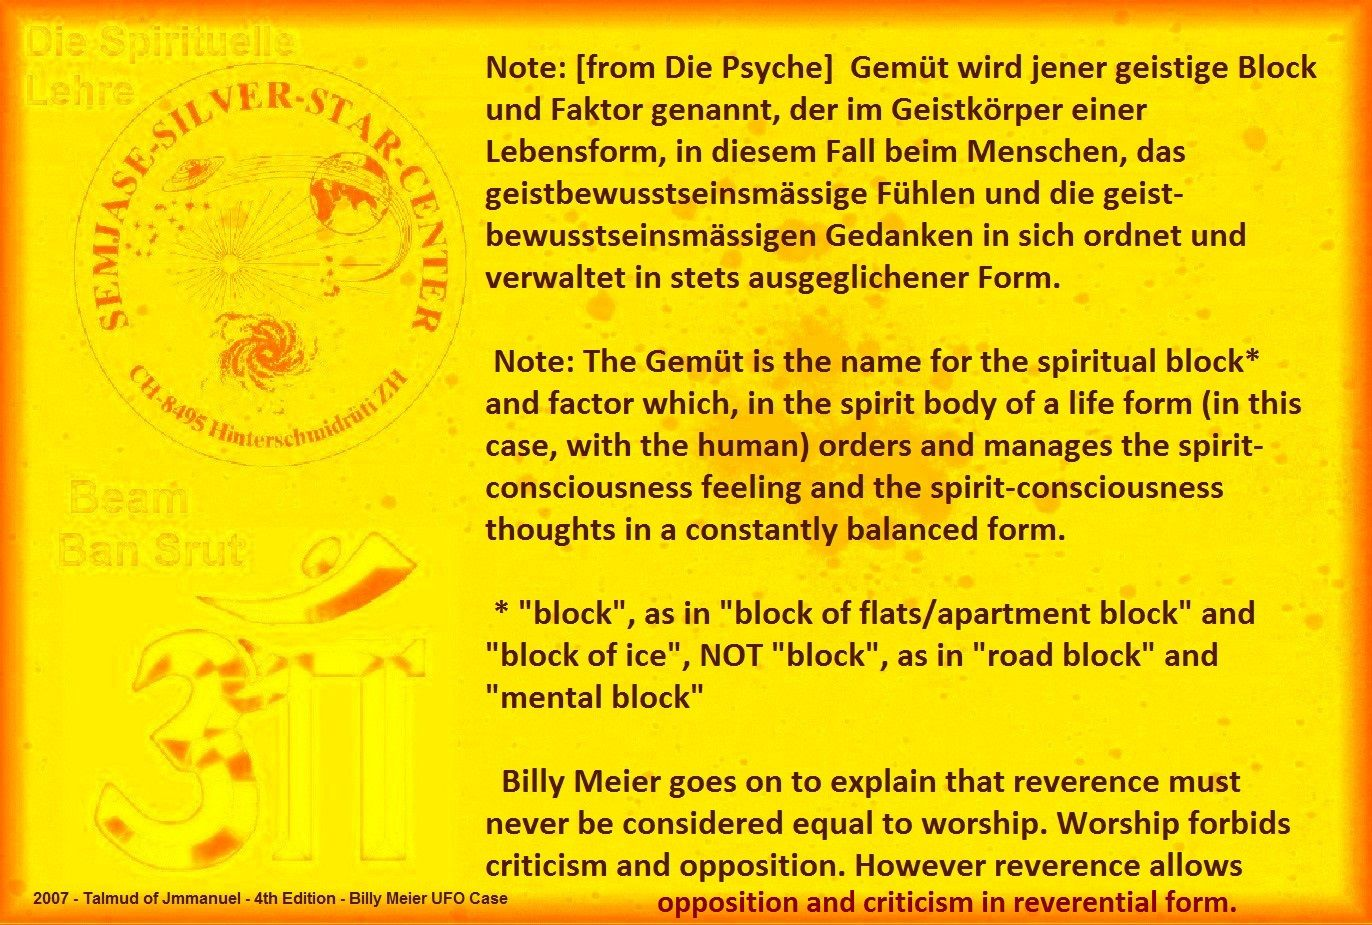 "Note: The Gemüt is the name for the spiritual block* and factor which, in the spirit body of a life form (in this case, with the human) orders and manages the spirit-consciousness feeling and the spirit-consciousness thoughts in a constantly balanced form.       * ""block"", as in ""block of flats/apartment block"" and ""block of ice"", NOT ""block"", as in ""road block"" and ""mental block""     Billy Meier goes on to explain that reverence must never be considered equal to worship. Worship forbids…"